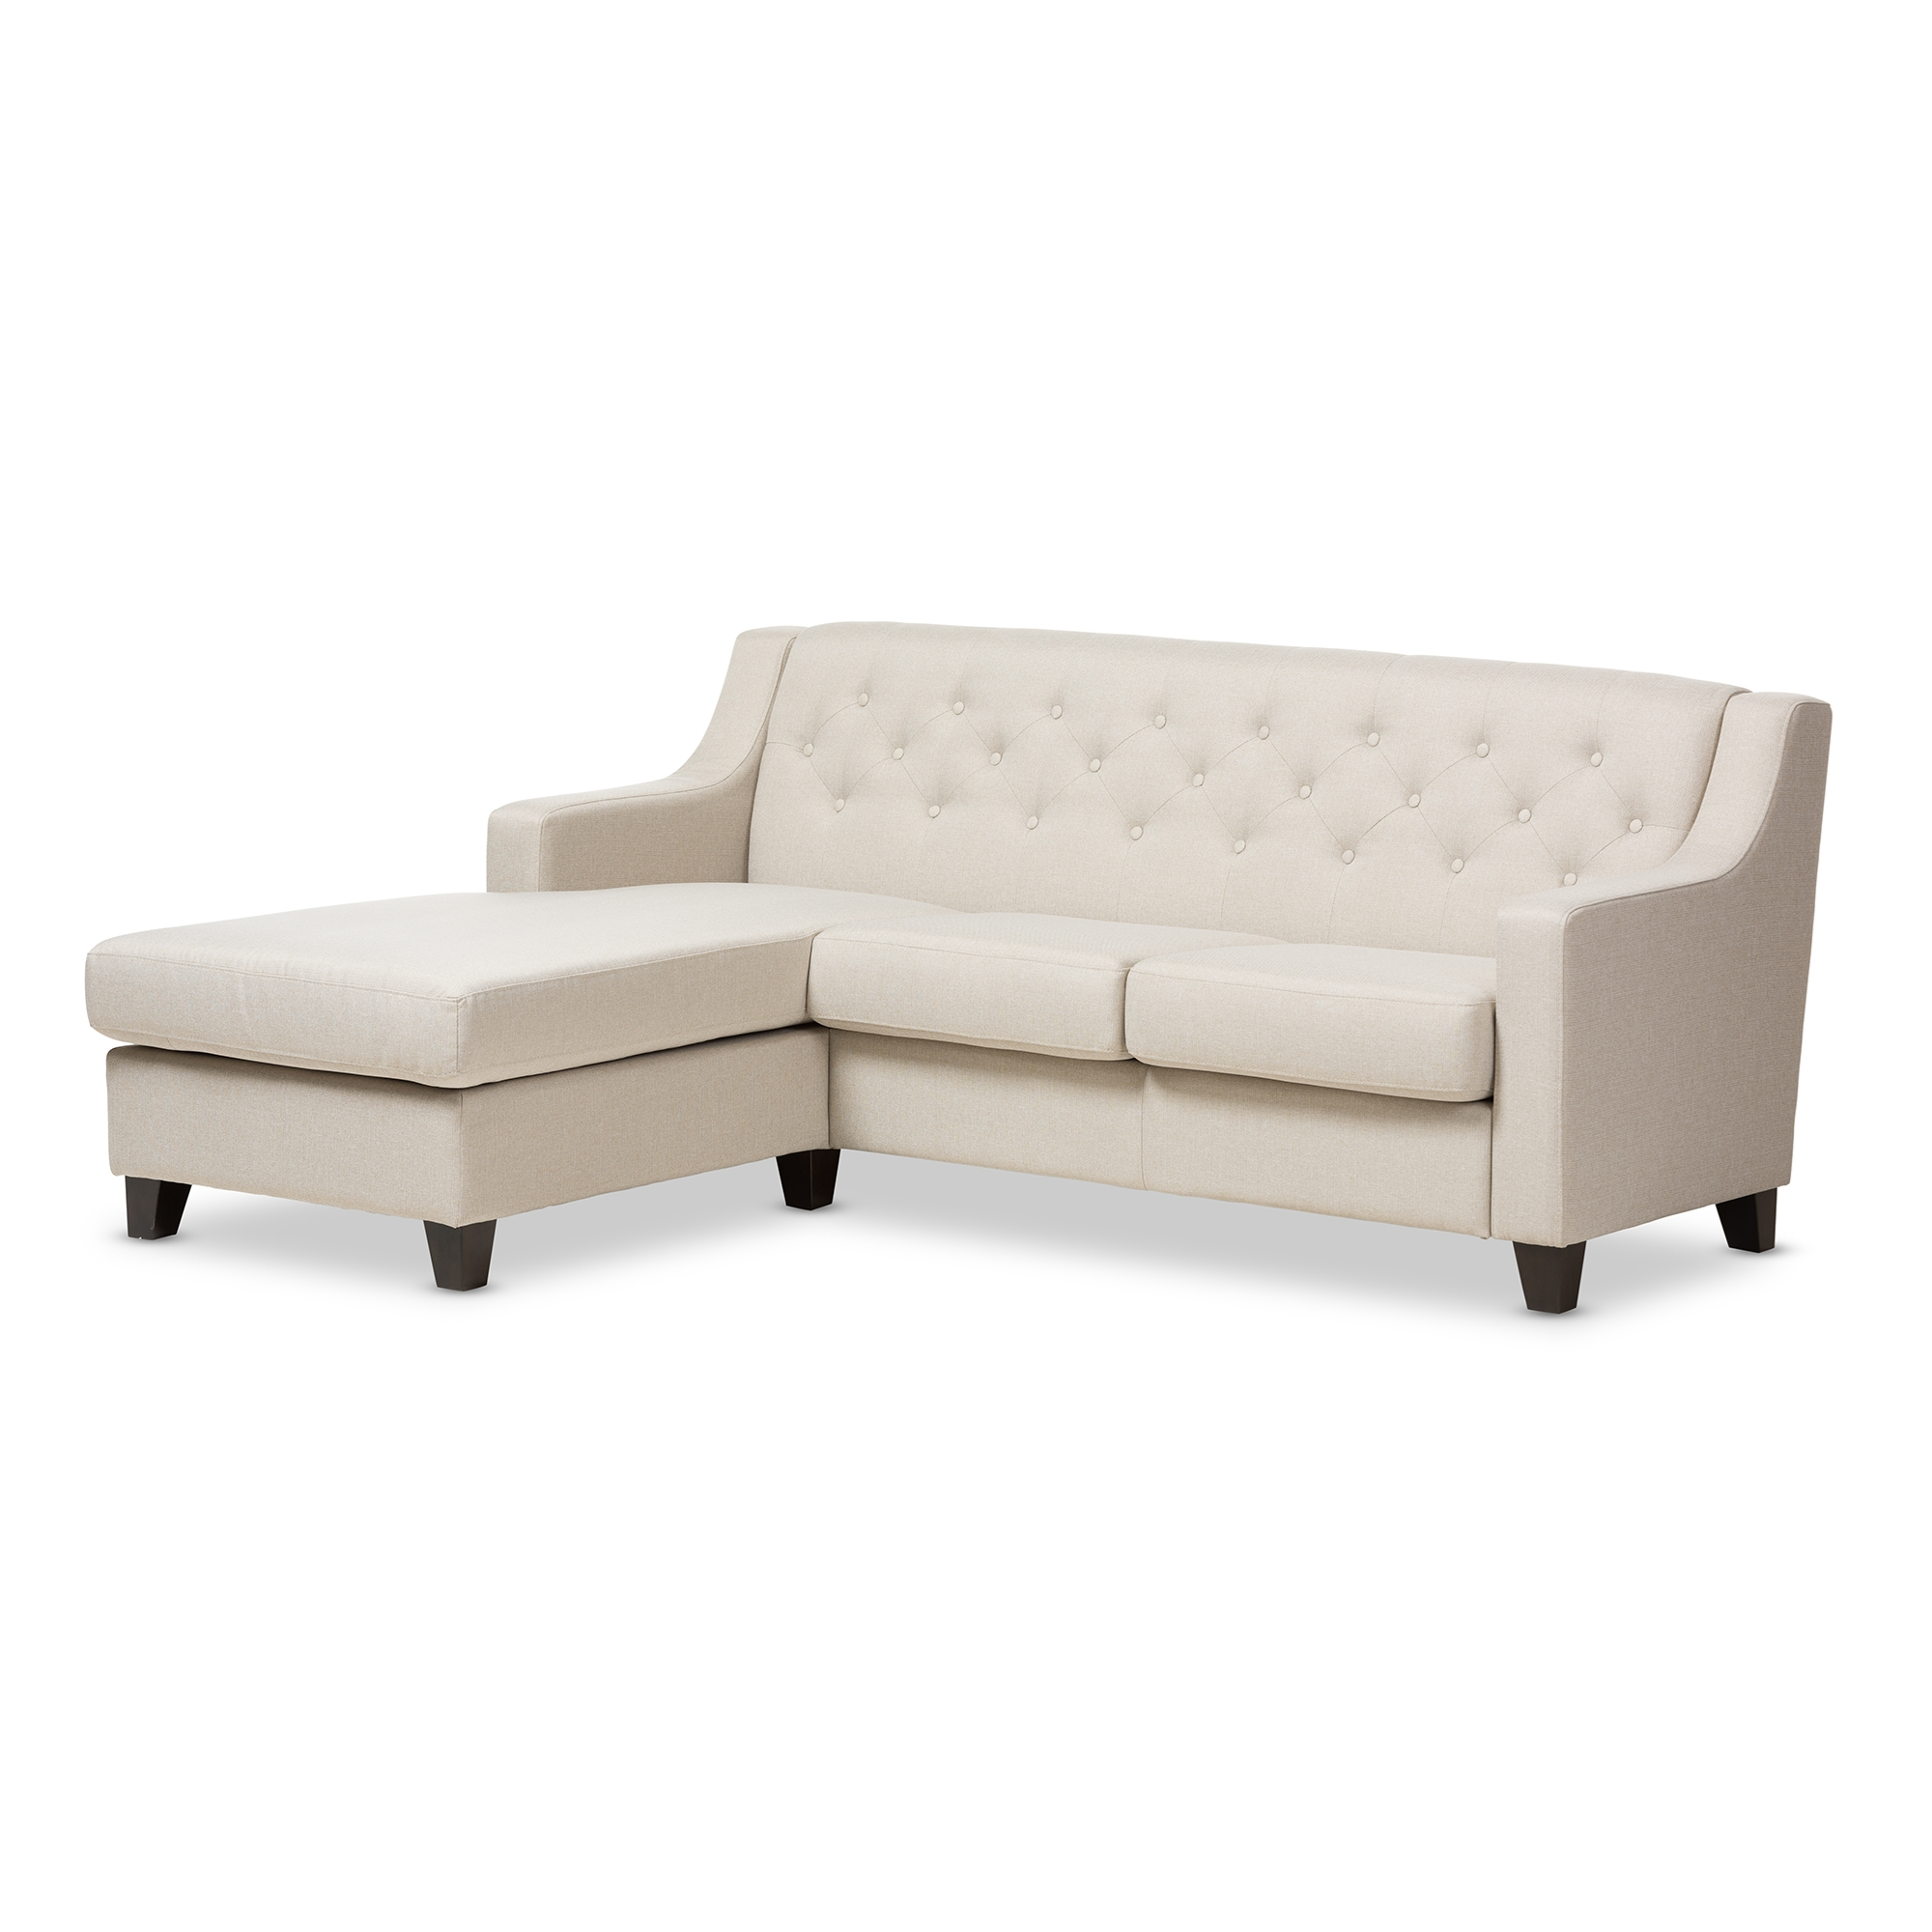 Baxton Studio Arcadia Light Beige Fabric Upholstered Button Tufted 2 Piece  Sectional Sofa